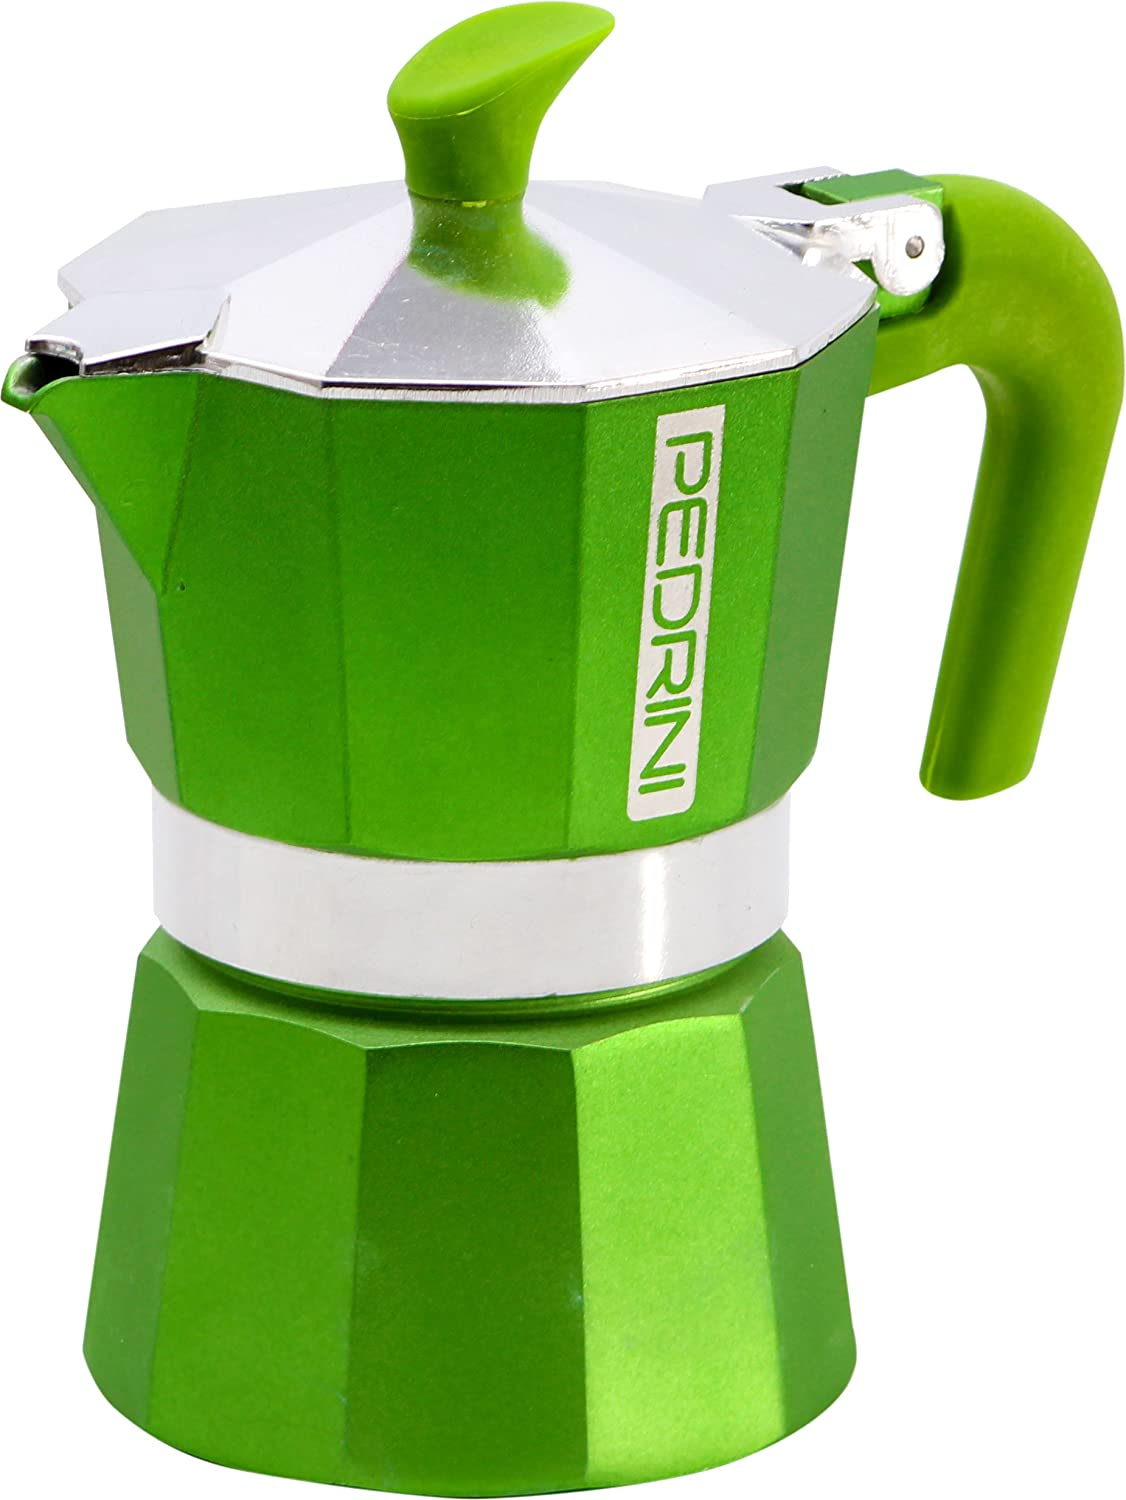 Pedrini: 2 cups Espresso Coffee Pot, Green Colour: Amazon.es: Hogar